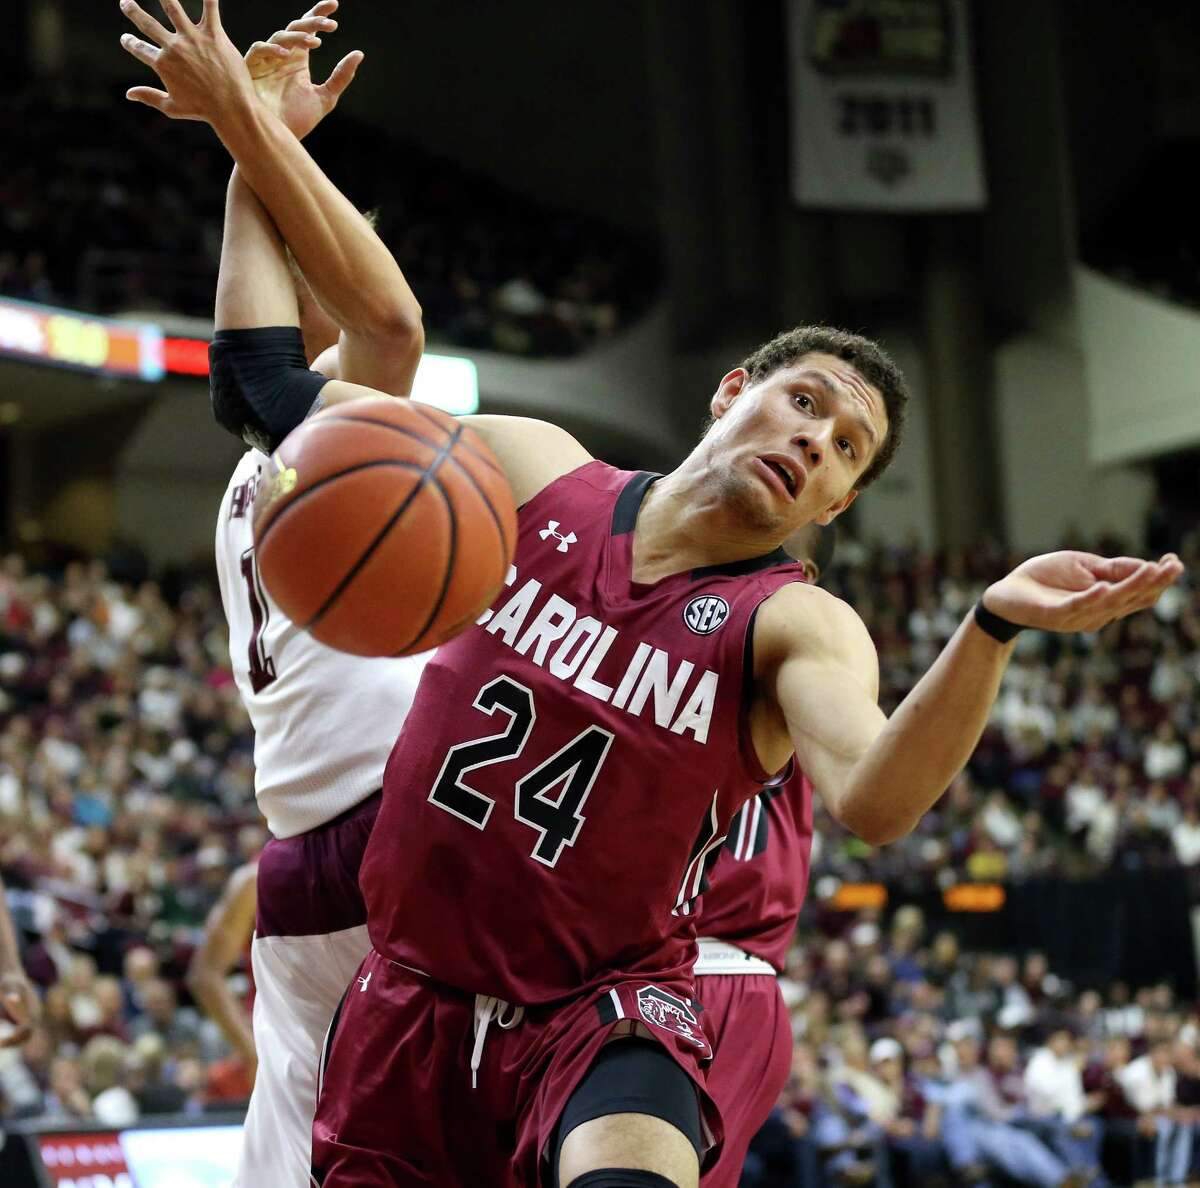 South Carolina's Michael Carrera (24) gets tangled up with Texas A&M's D.J. Hogg (1) while going after a rebound during the first half of an NCAA college basketball game, Saturday, Feb. 6, 2016, in College Station, Texas. South Carolina won 81-78. (AP Photo/Sam Craft)